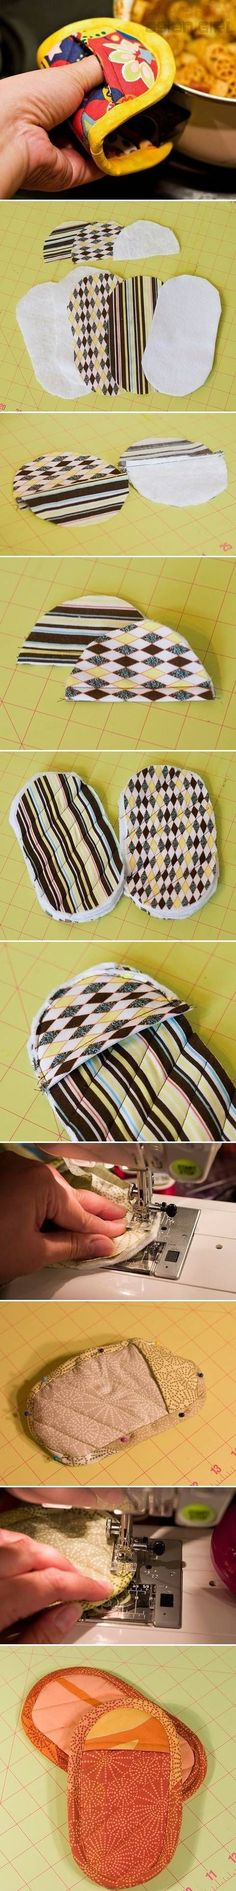 DIY Nice Pot Holder Pictures, Photos, and Images for Facebook, Tumblr, Pinterest, and Twitter